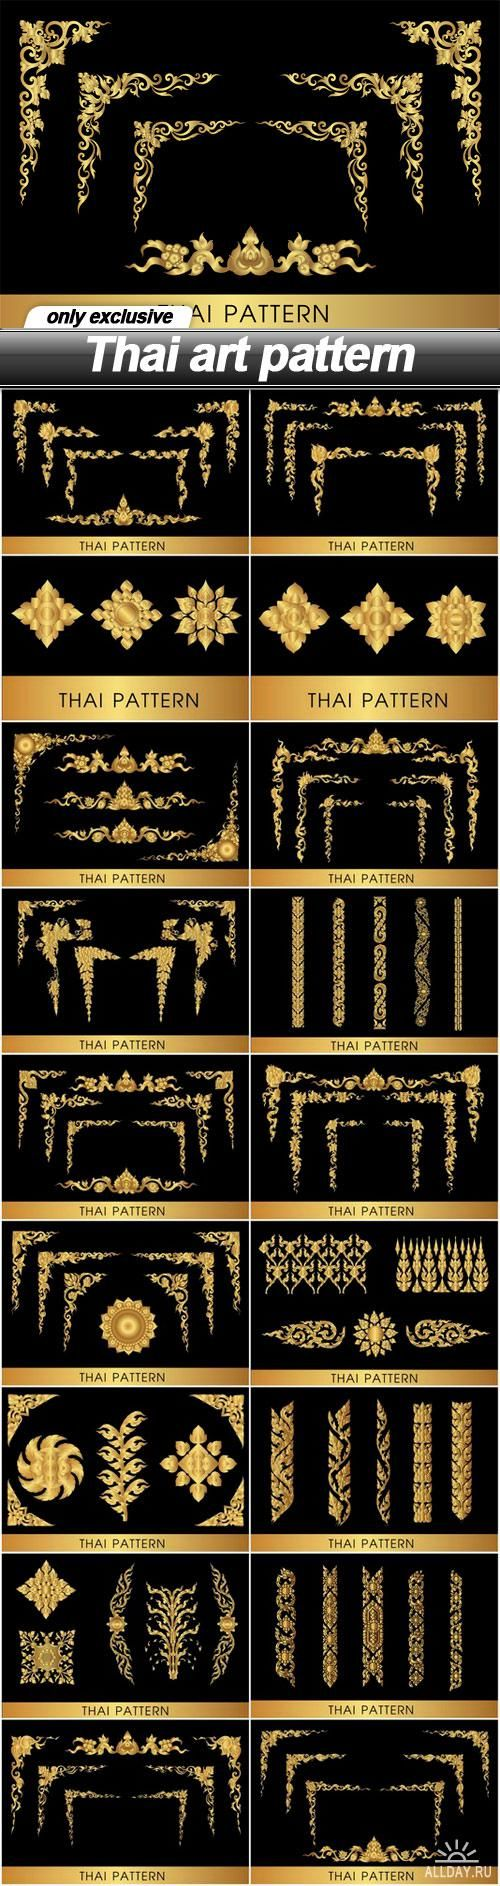 Thai art pattern - 19 EPS